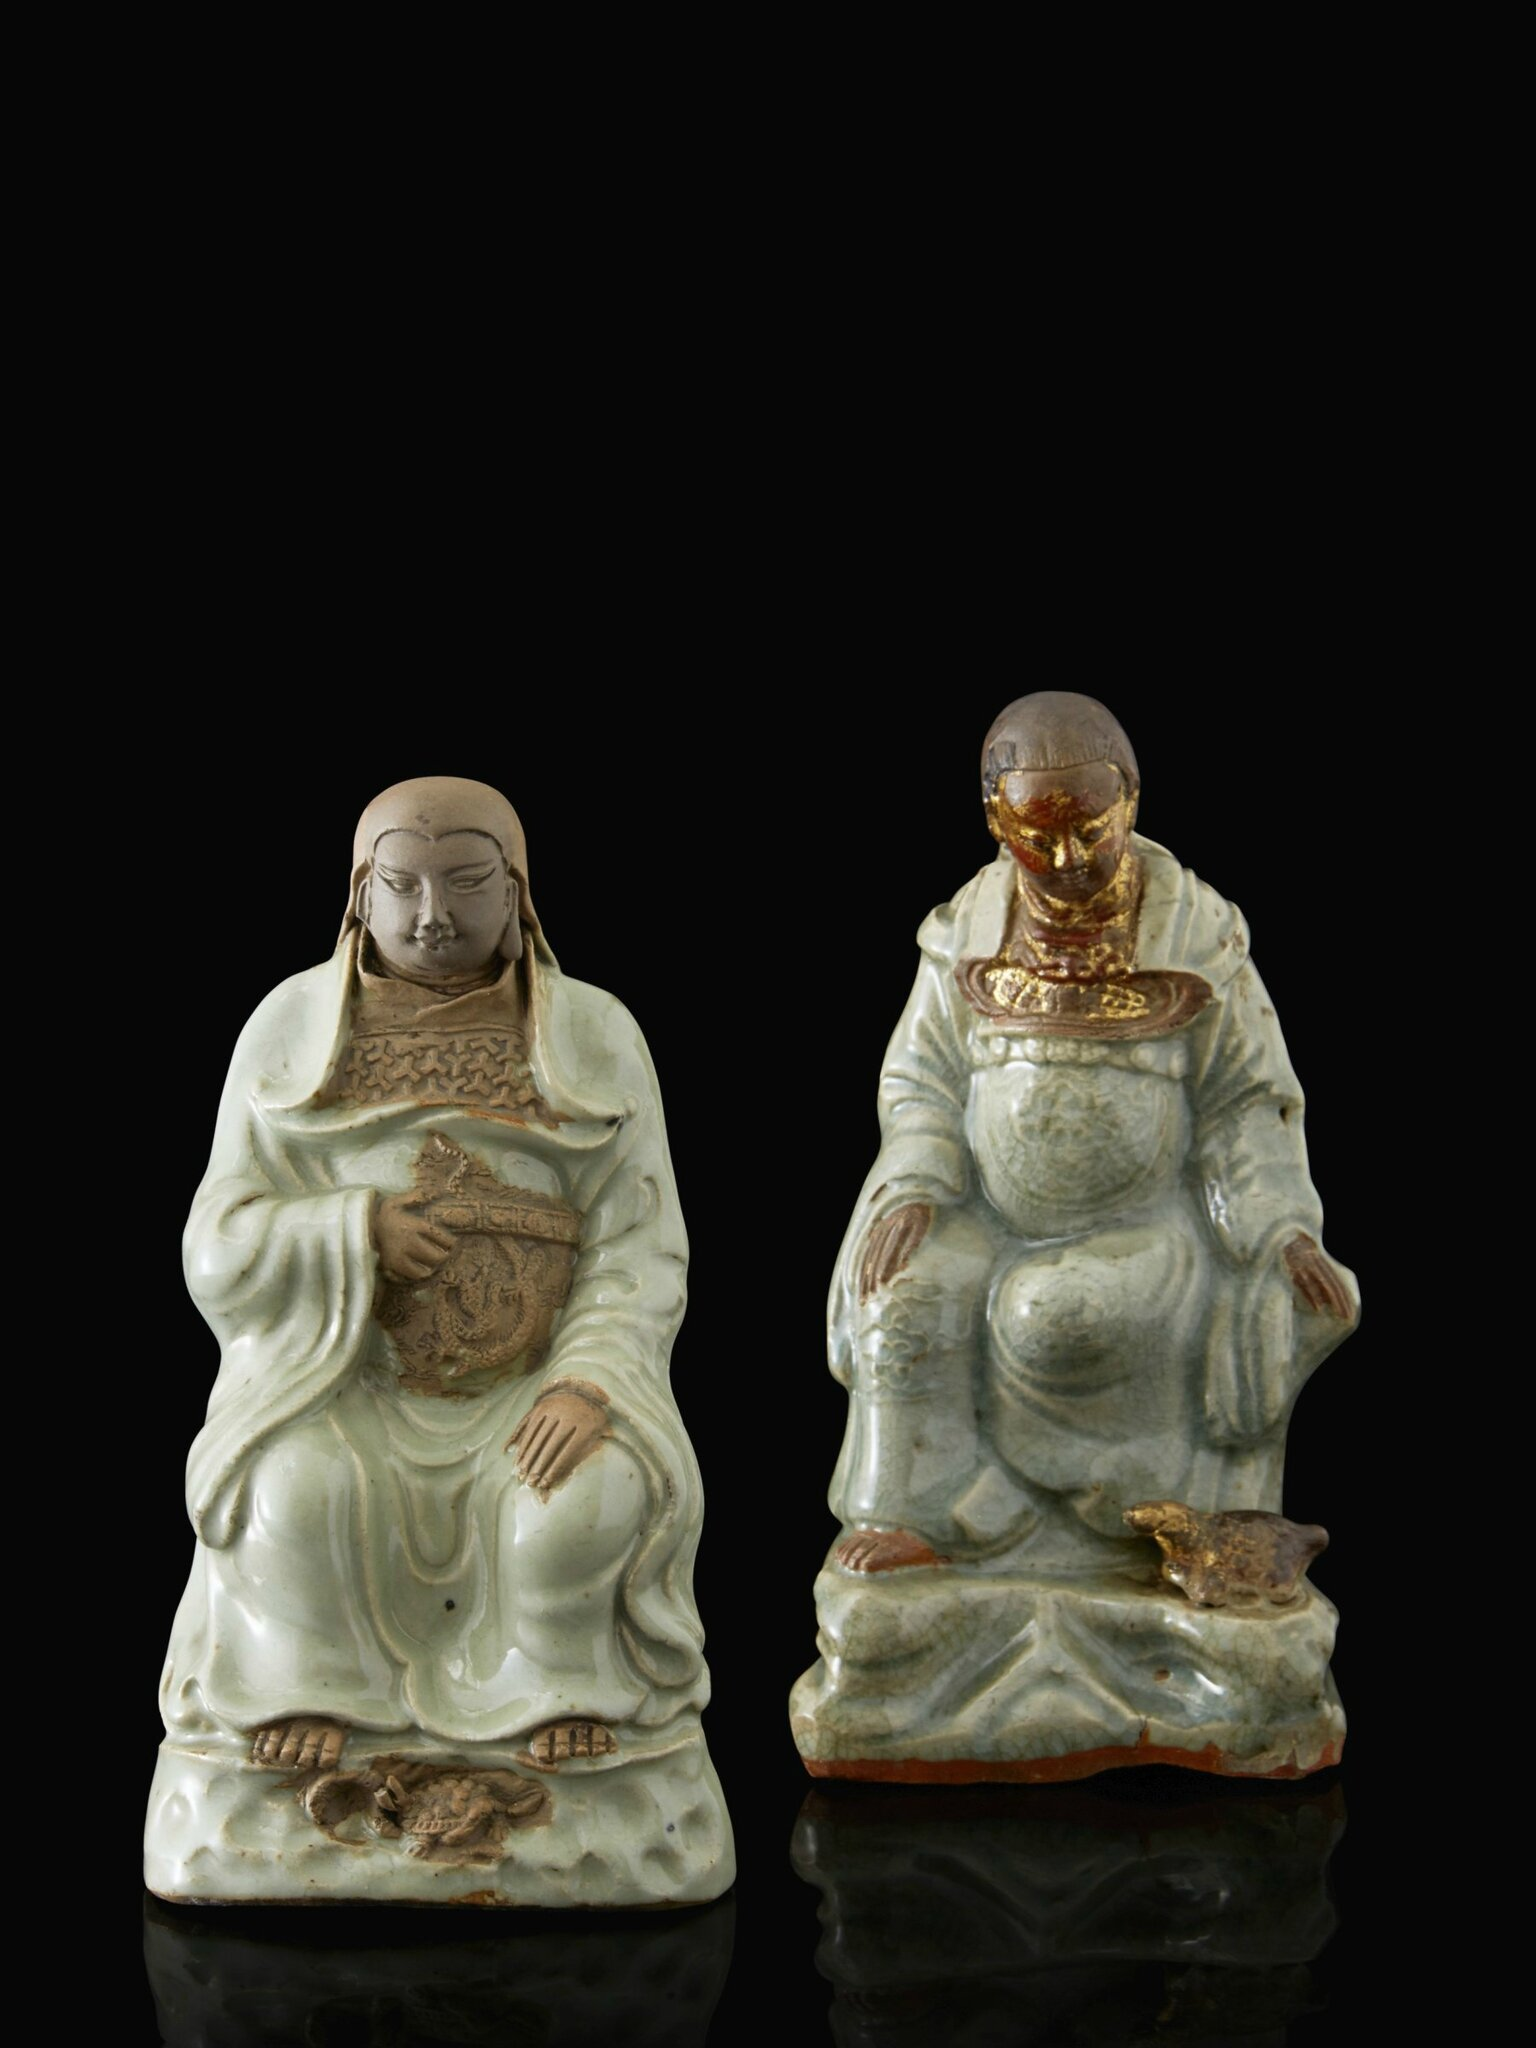 Two Longquan celadon figures of Zhenwu, China, 15th - 16th century